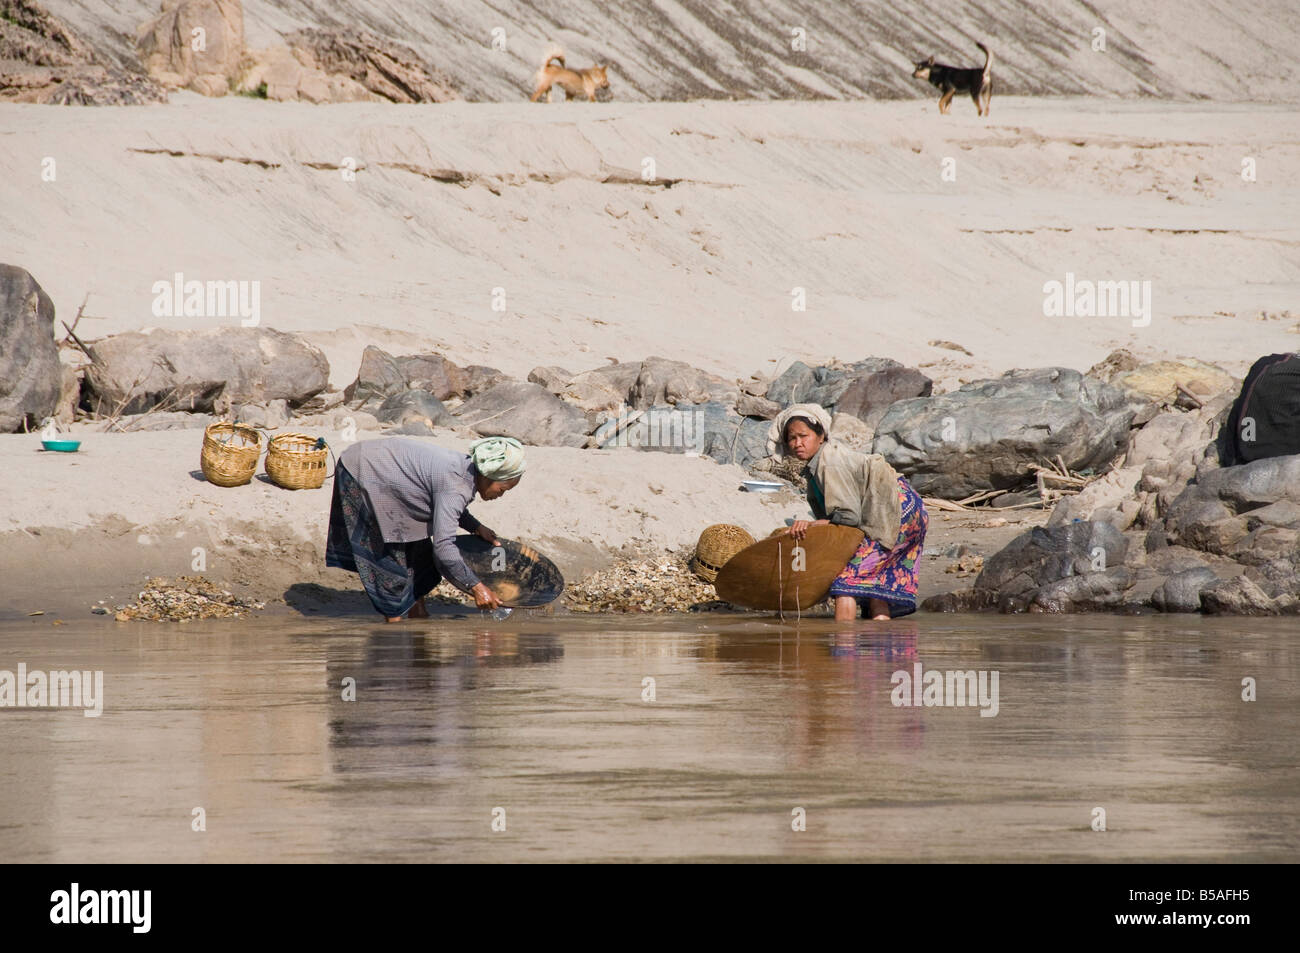 Panning for gold, Mekong River, Laos, Indochina, Southeast Asia - Stock Image